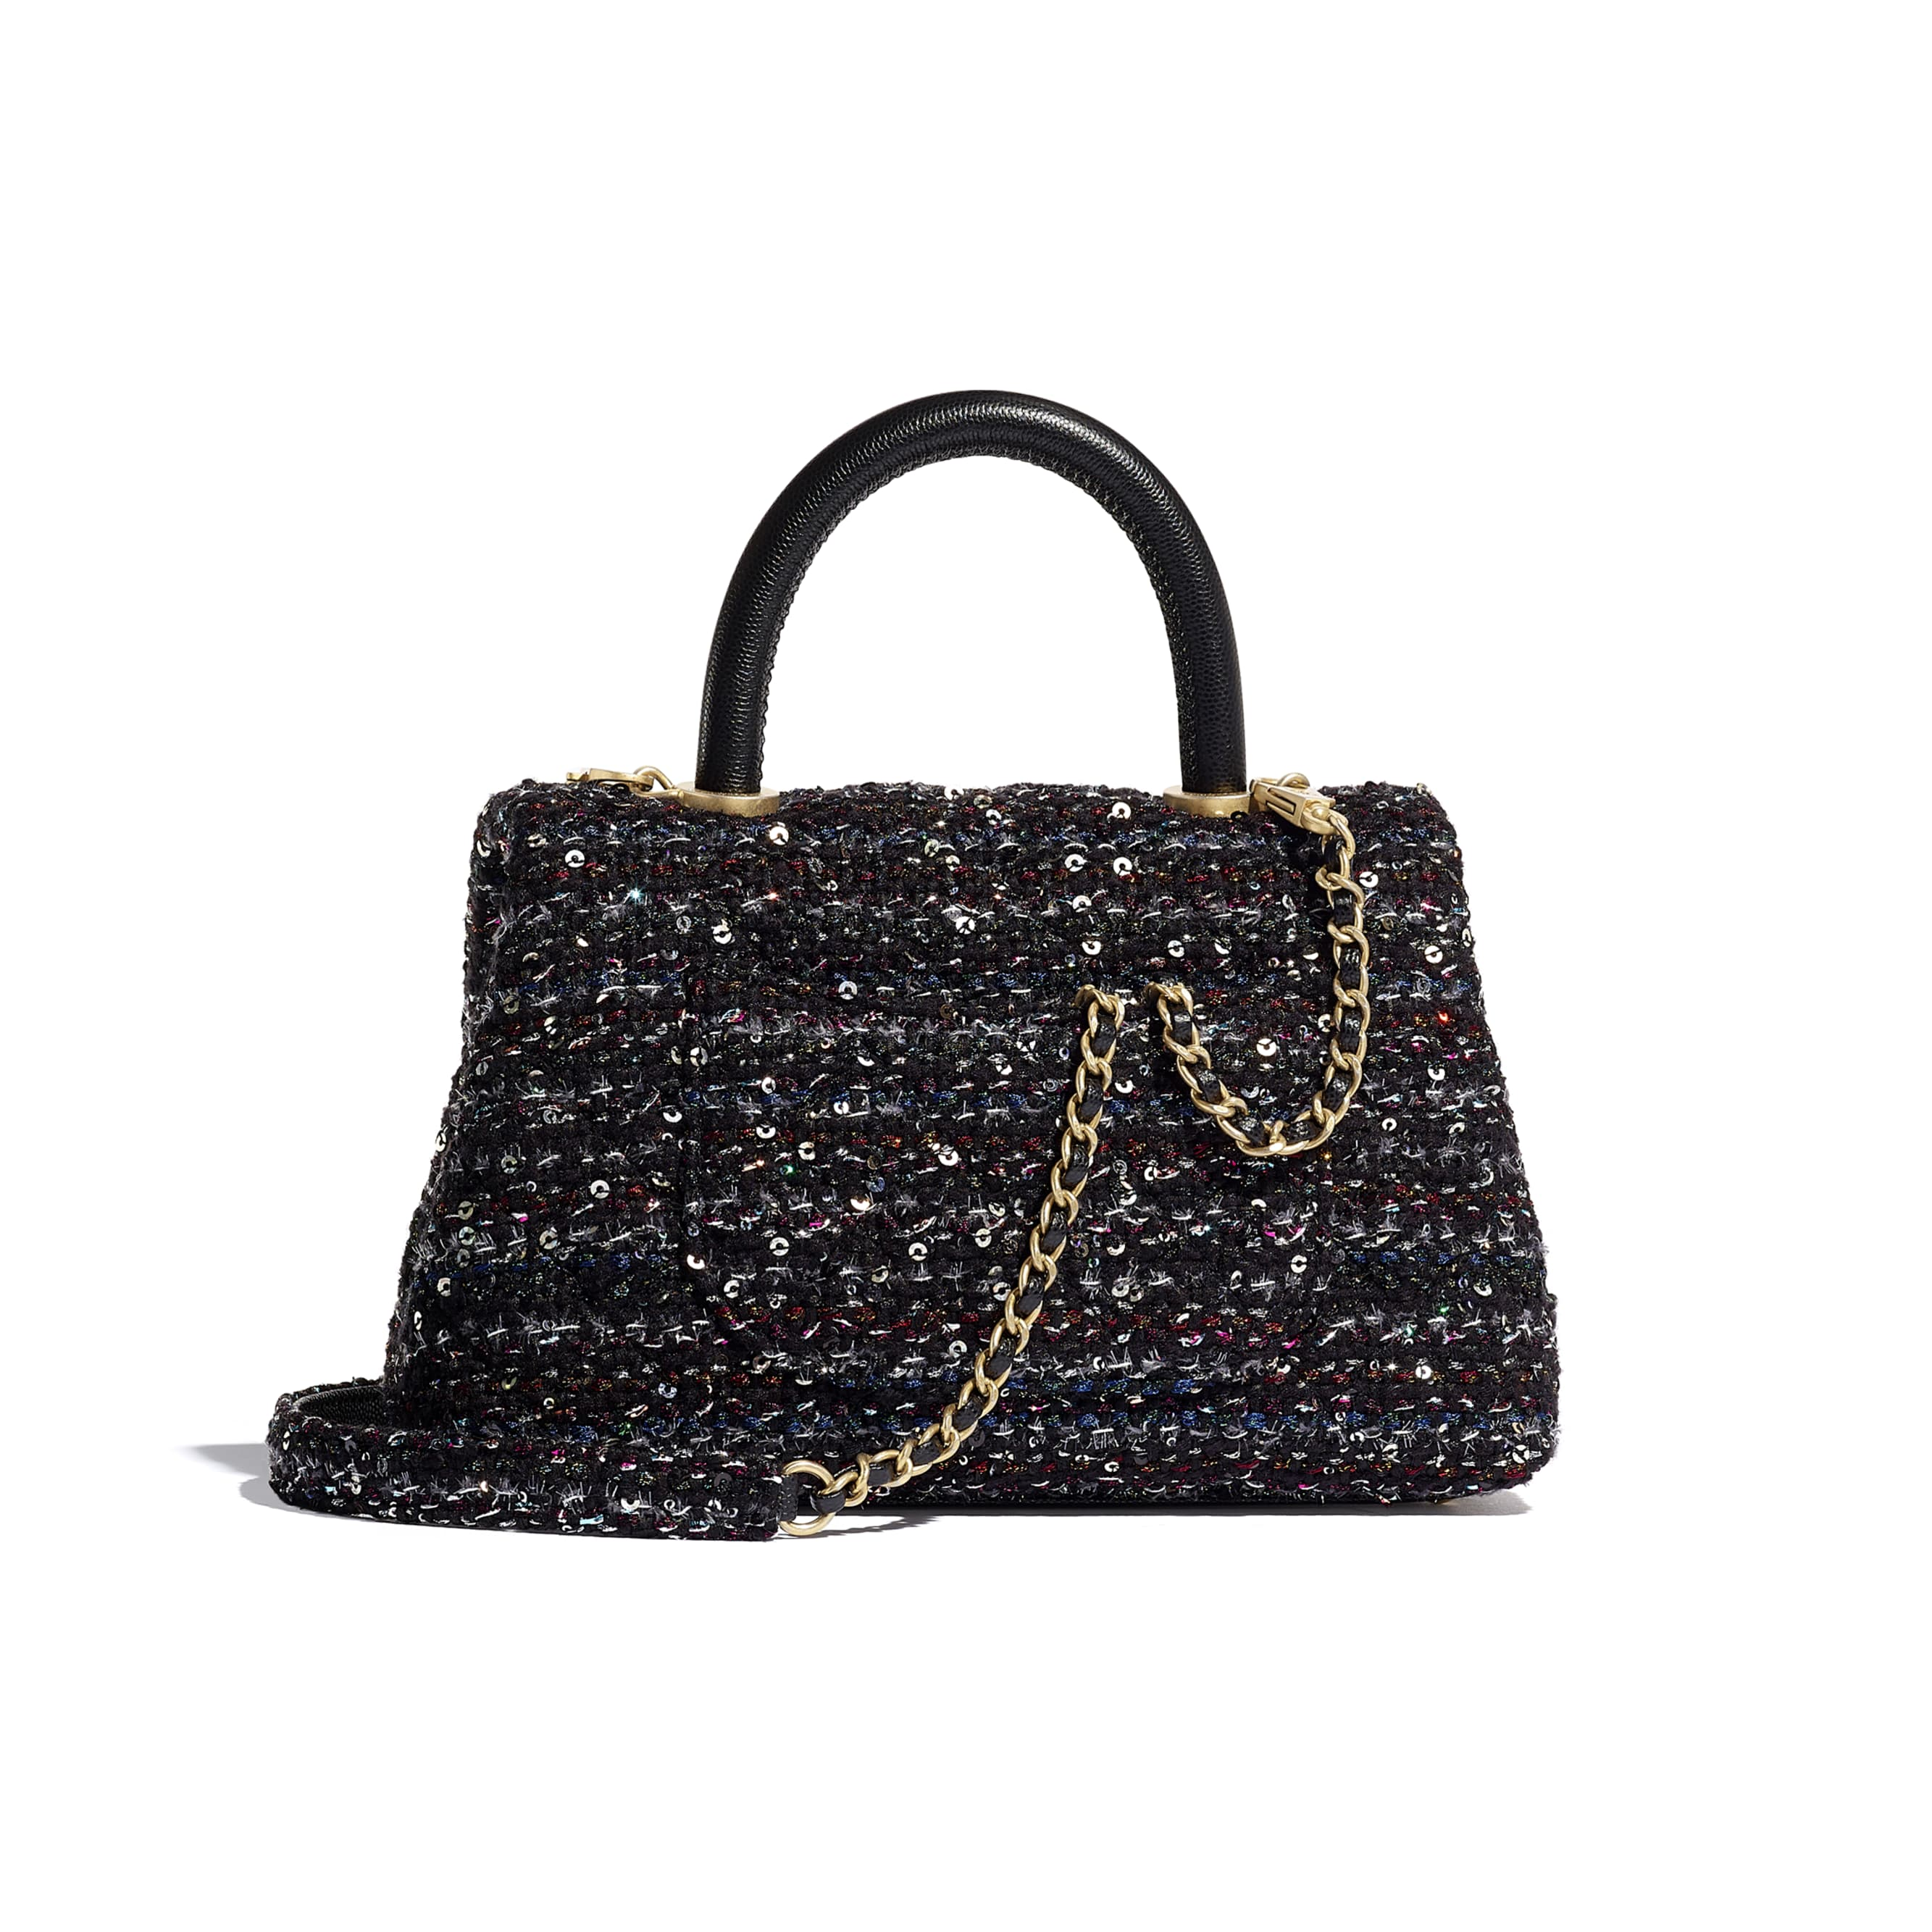 Small Flap Bag With Top Handle - Black, Silver, Blue & Red - Tweed, Grained Calfskin & Gold-Tone Metal - CHANEL - Alternative view - see standard sized version